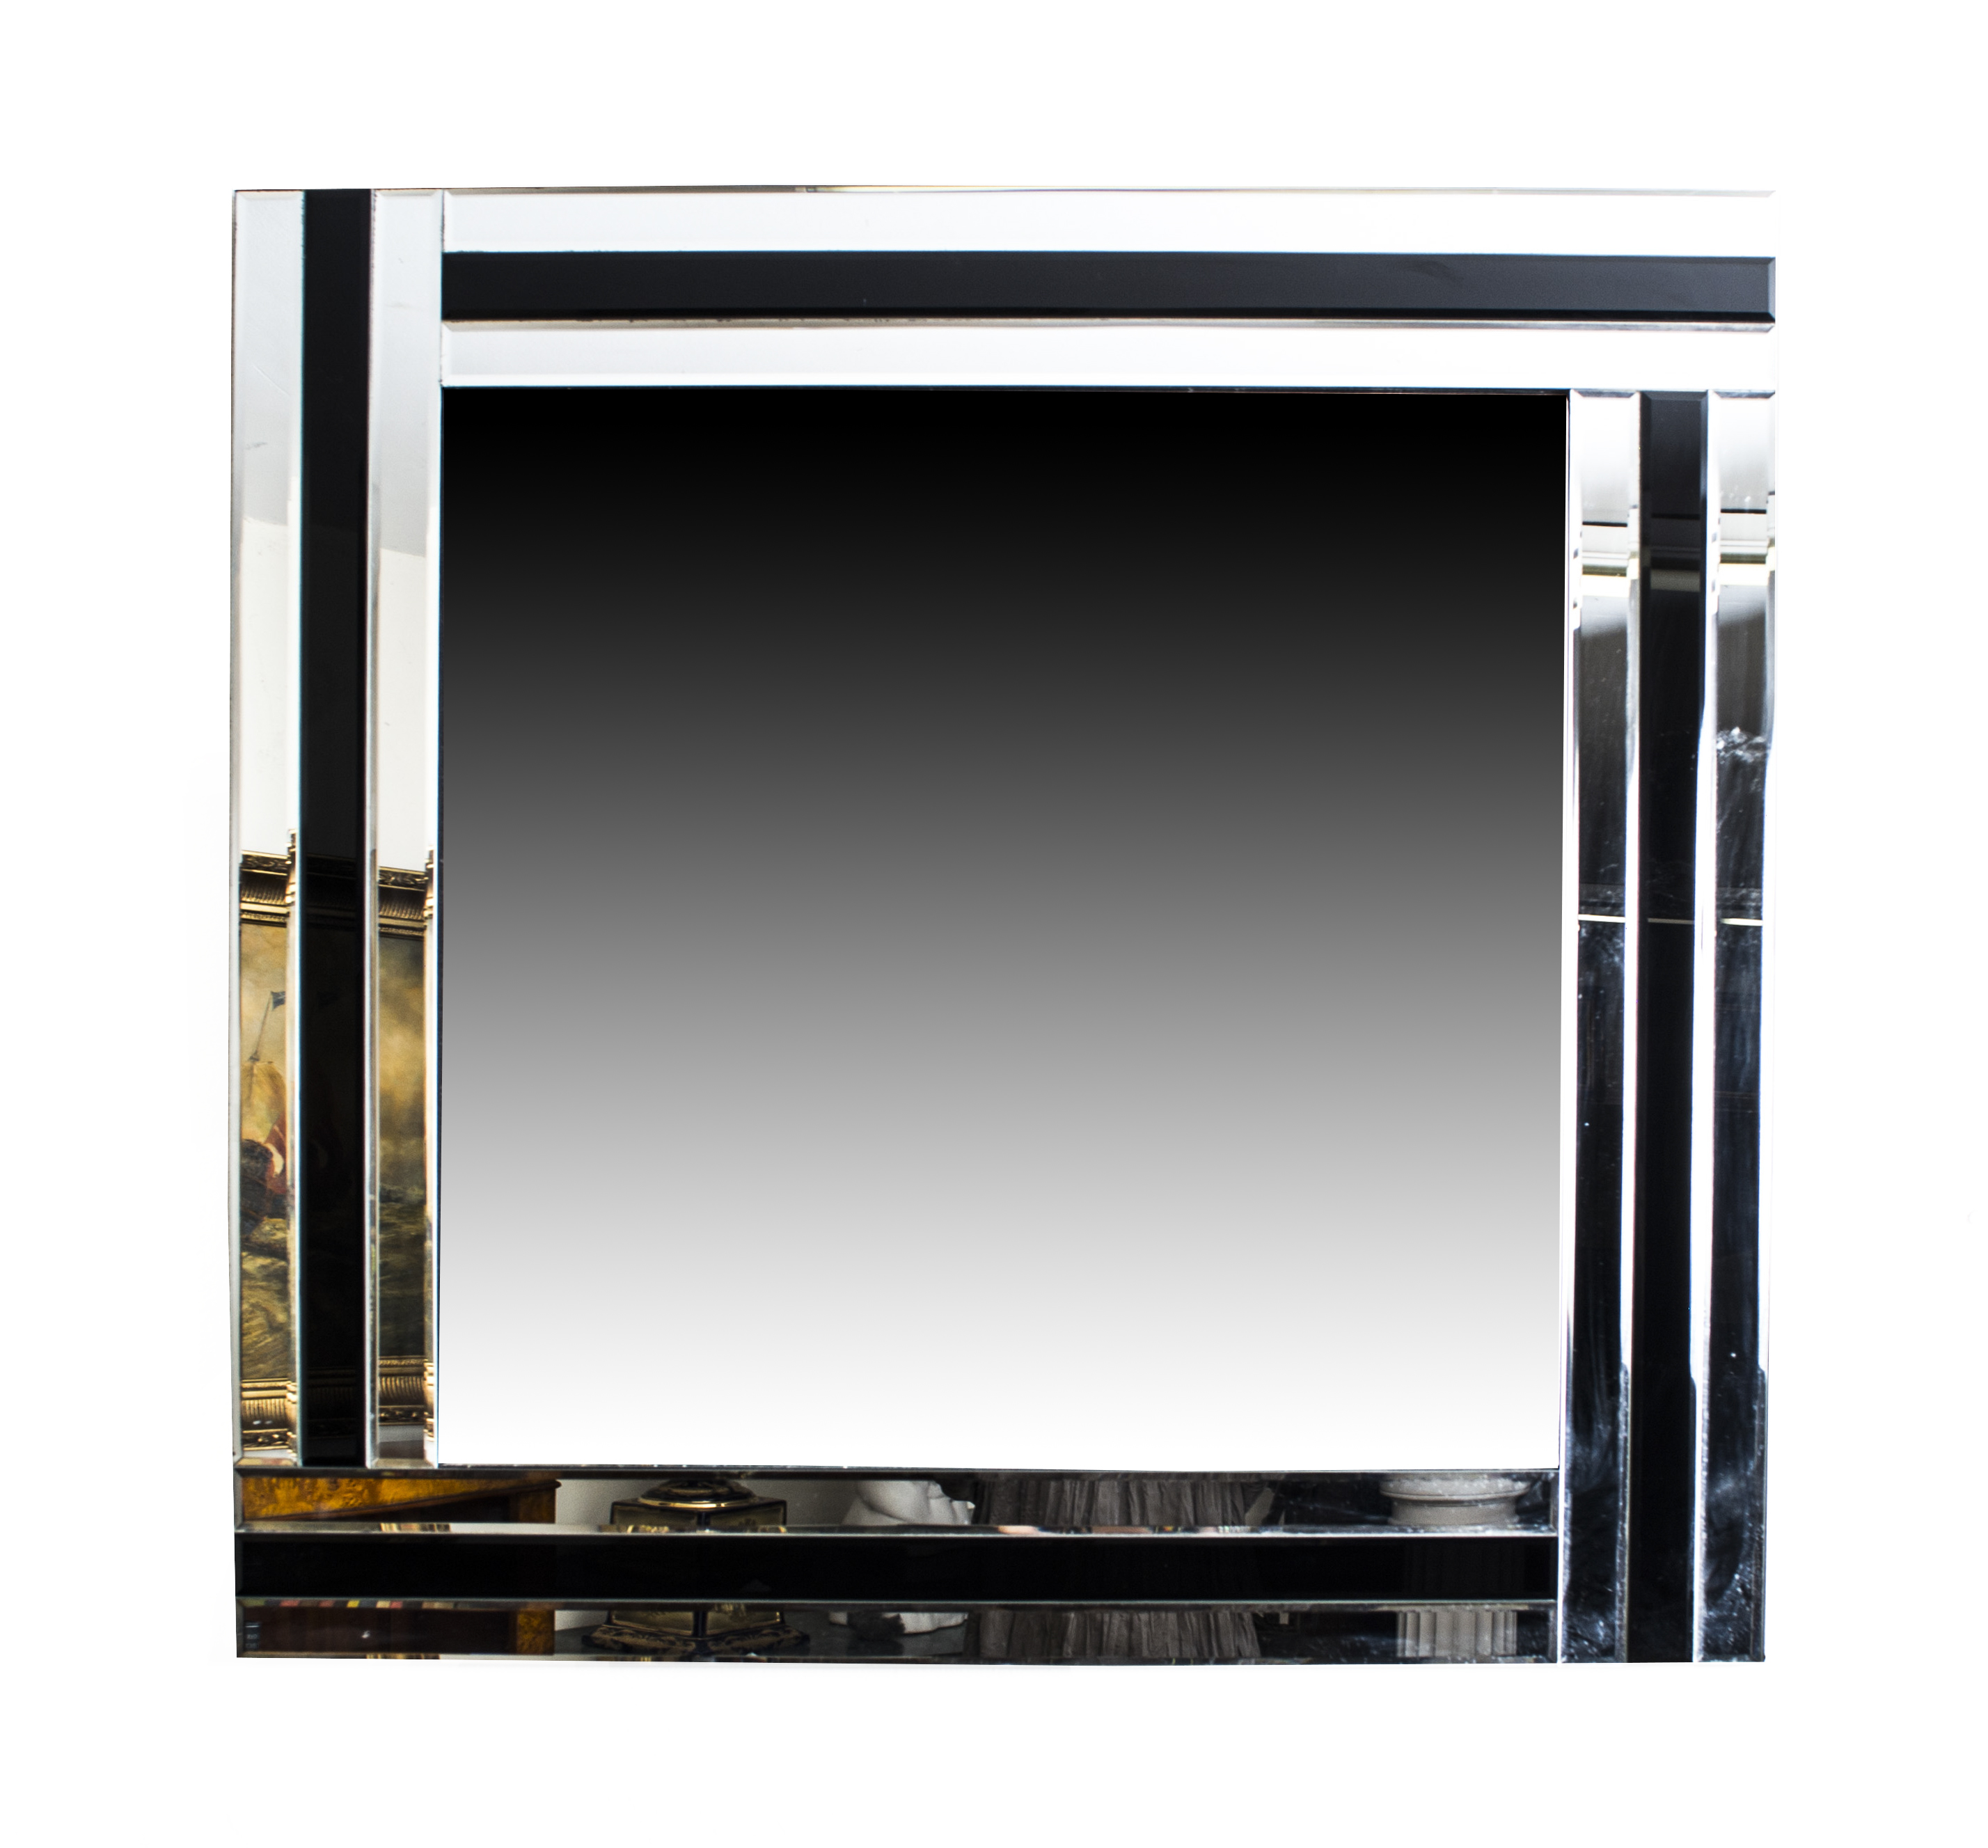 Cool and chic silver and ebony square art deco mirror 90 x for Miroir 90x90